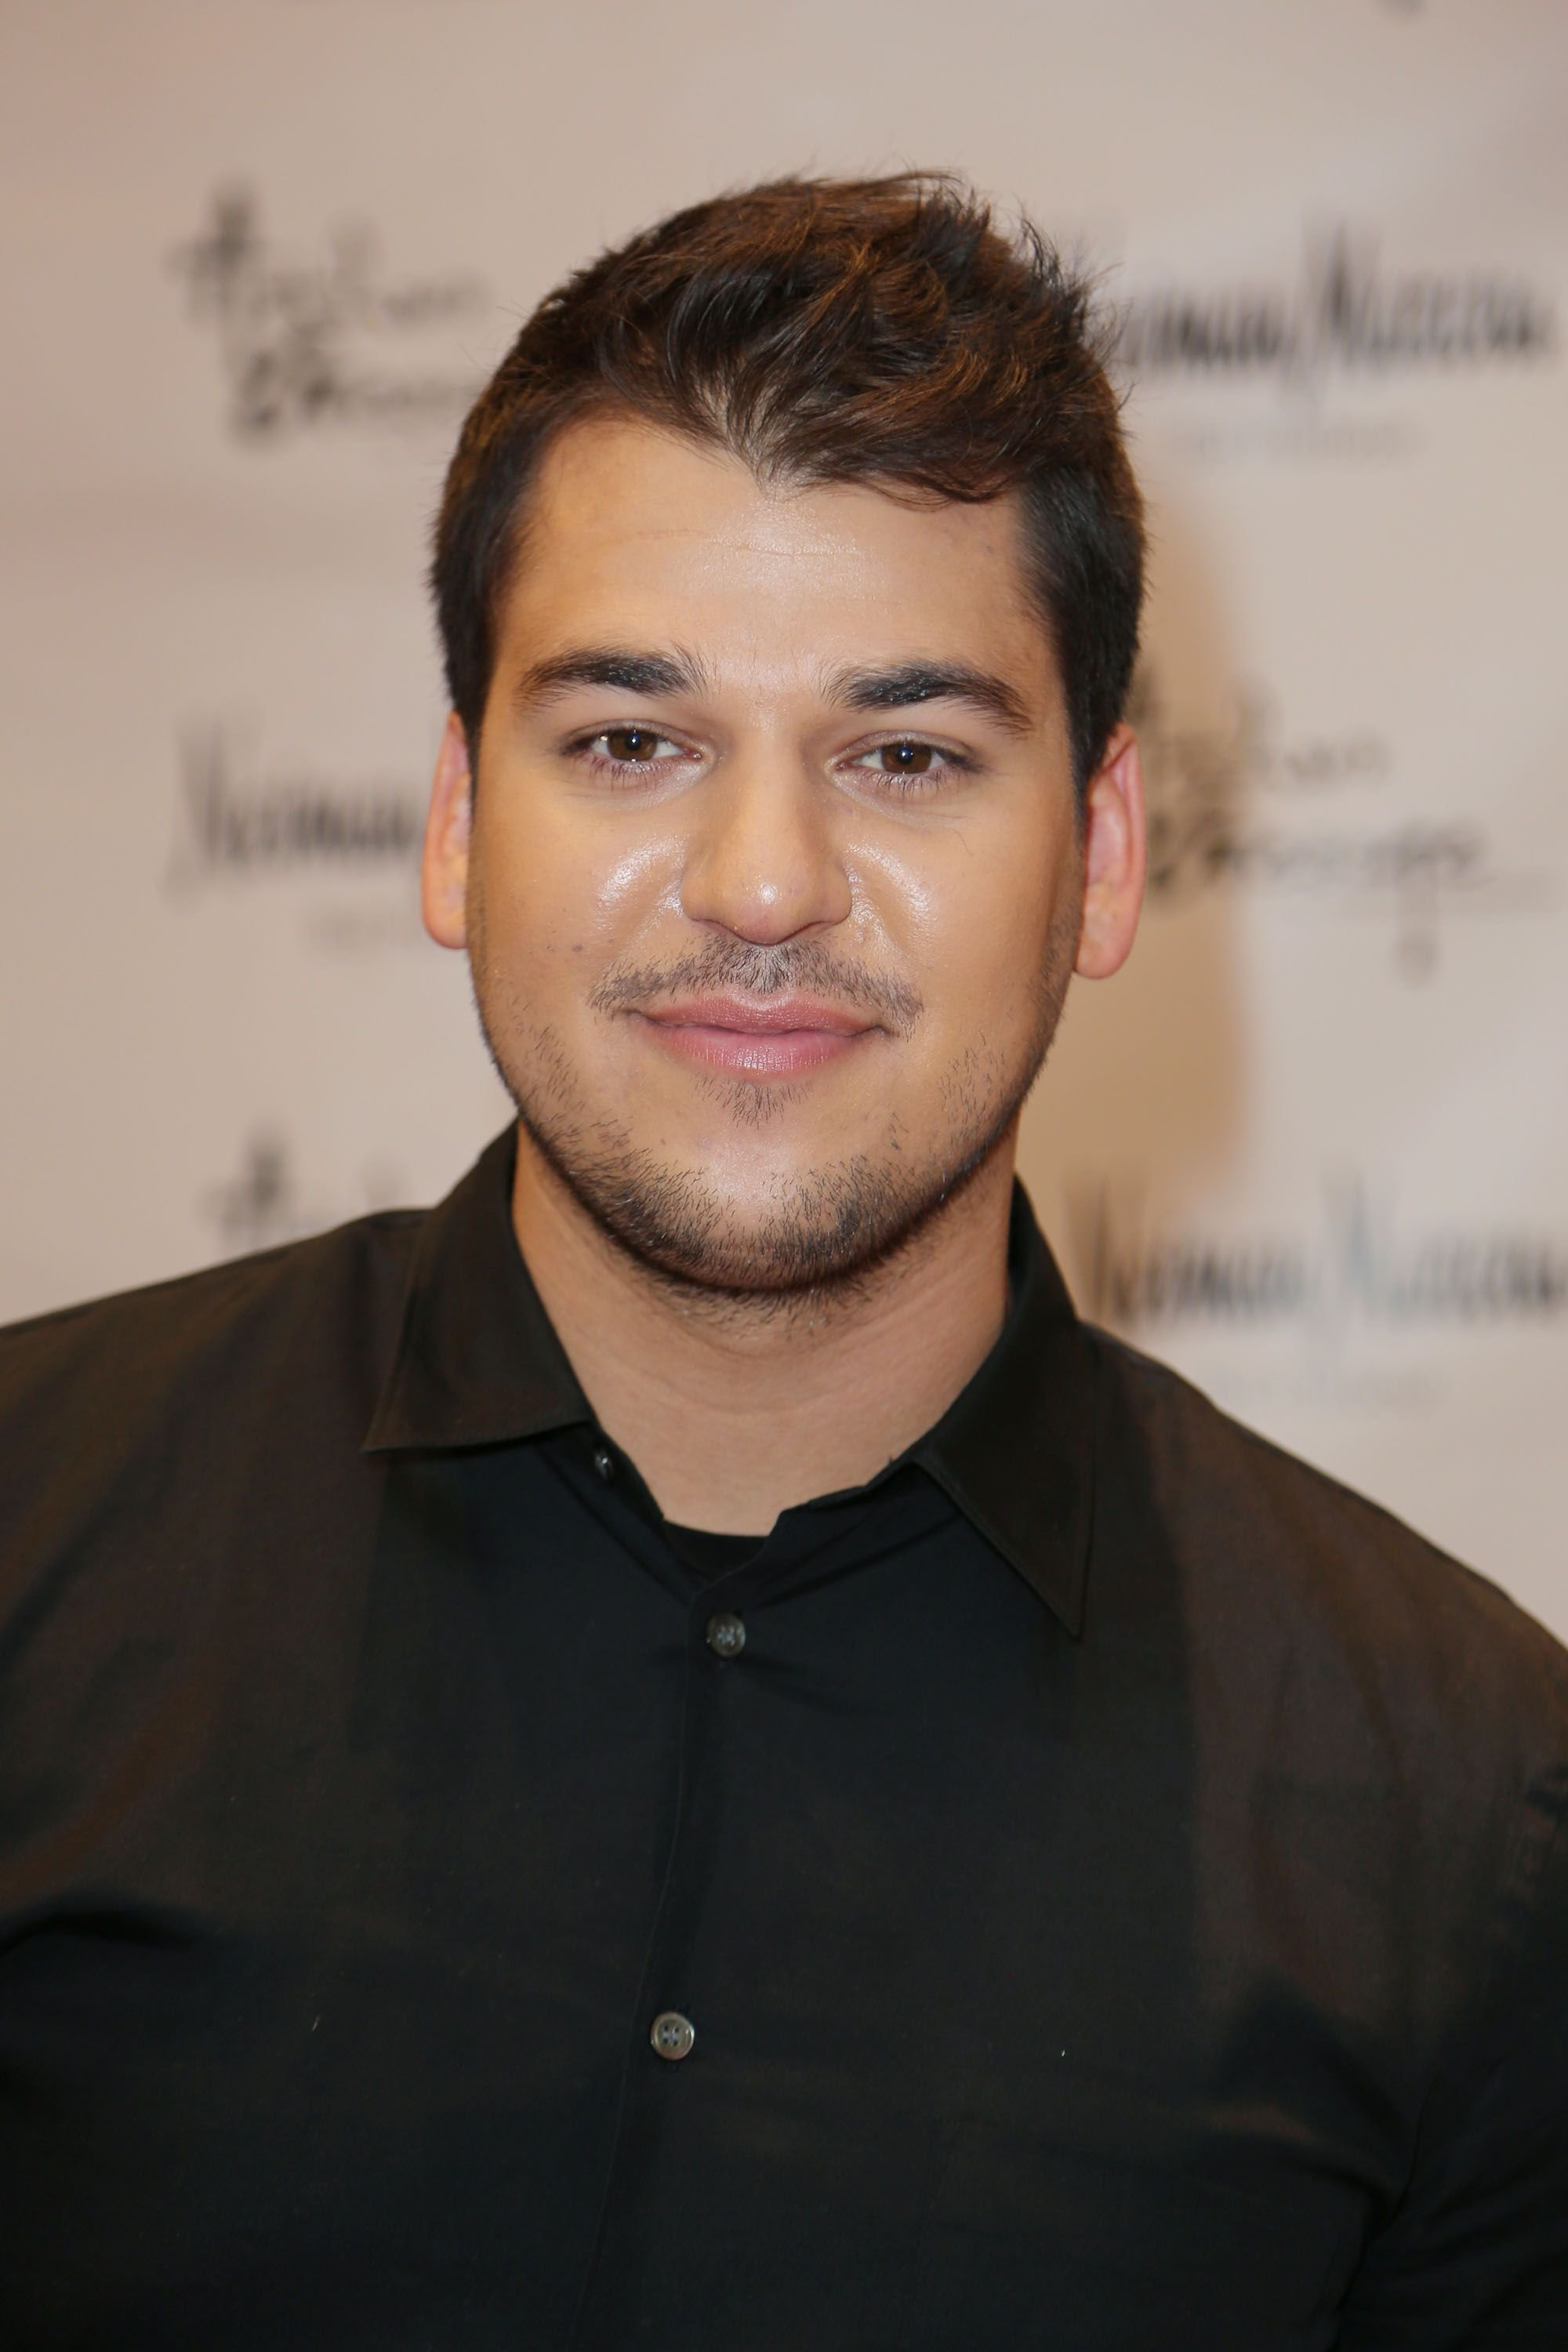 Rob Kardashian during his Arthur George Socks Collection presentation at Neiman Marcus Bal Harbour at Neiman Marcus on December 10, 2012 in Miami Beach, Florida. | Source: Getty Images